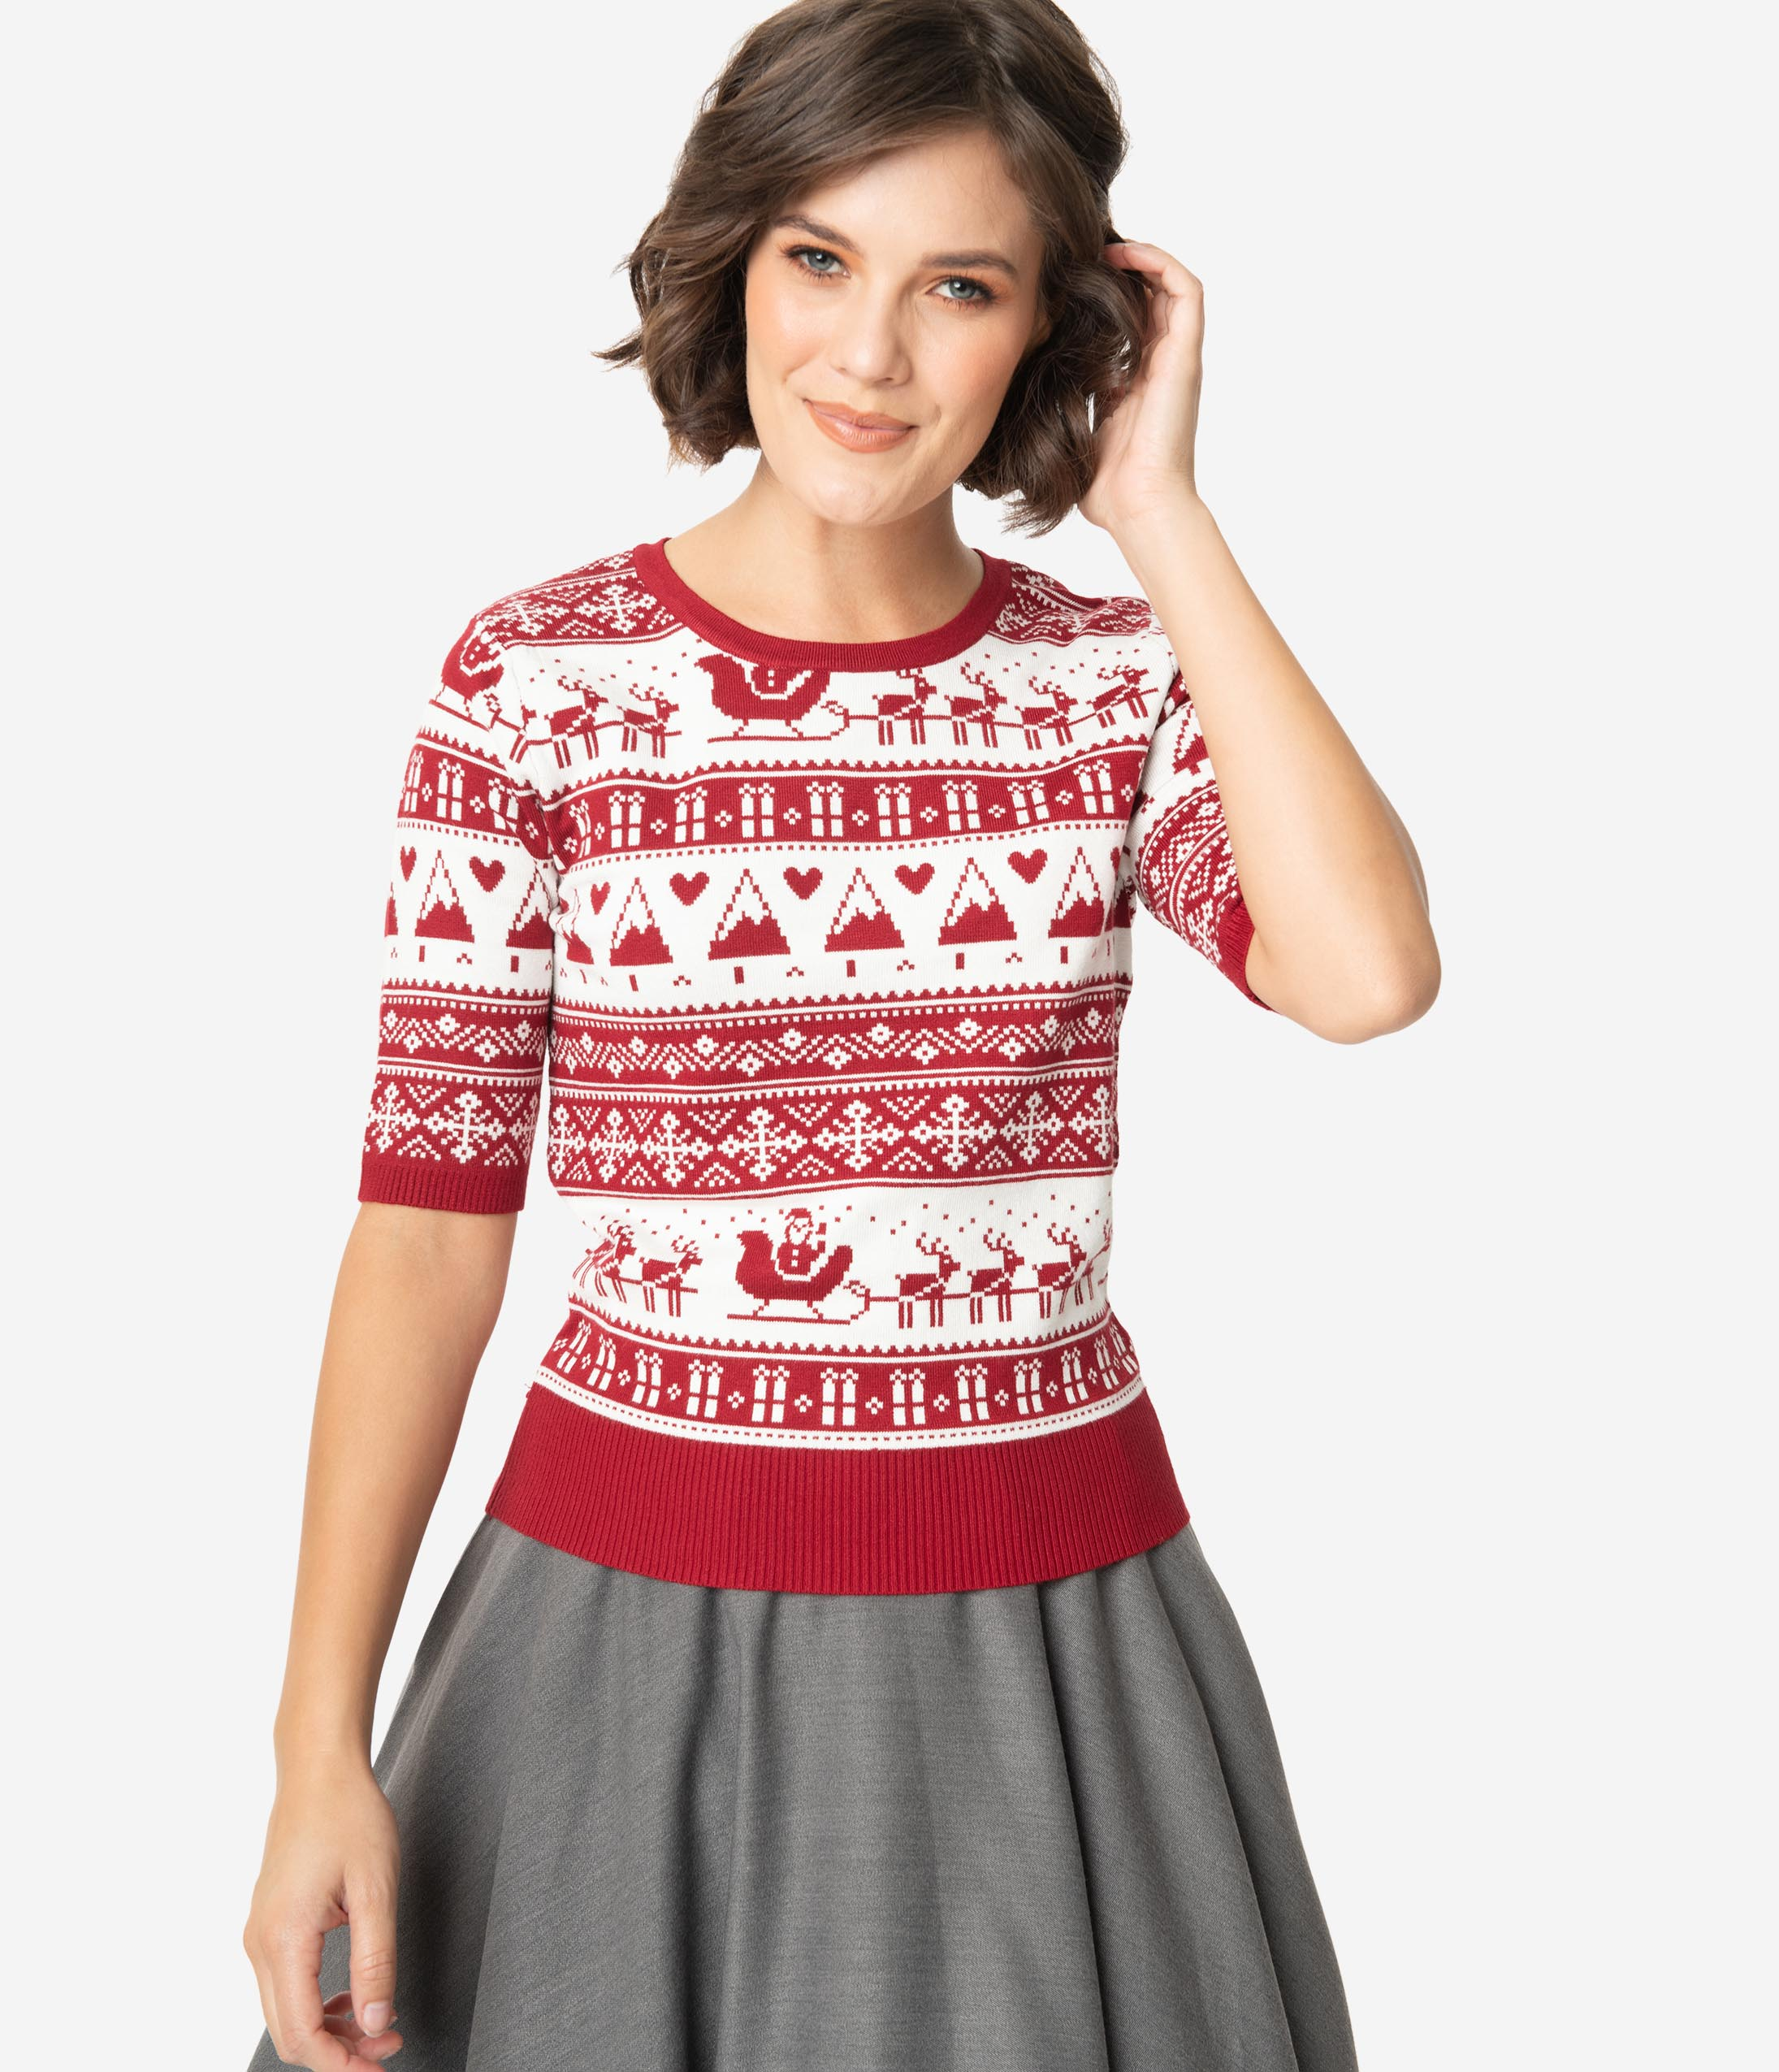 1930s Style Sweaters | Vintage Sweaters Retro Style Red  White Christmas Fair Isle Sleeved Knit Sweater $52.00 AT vintagedancer.com